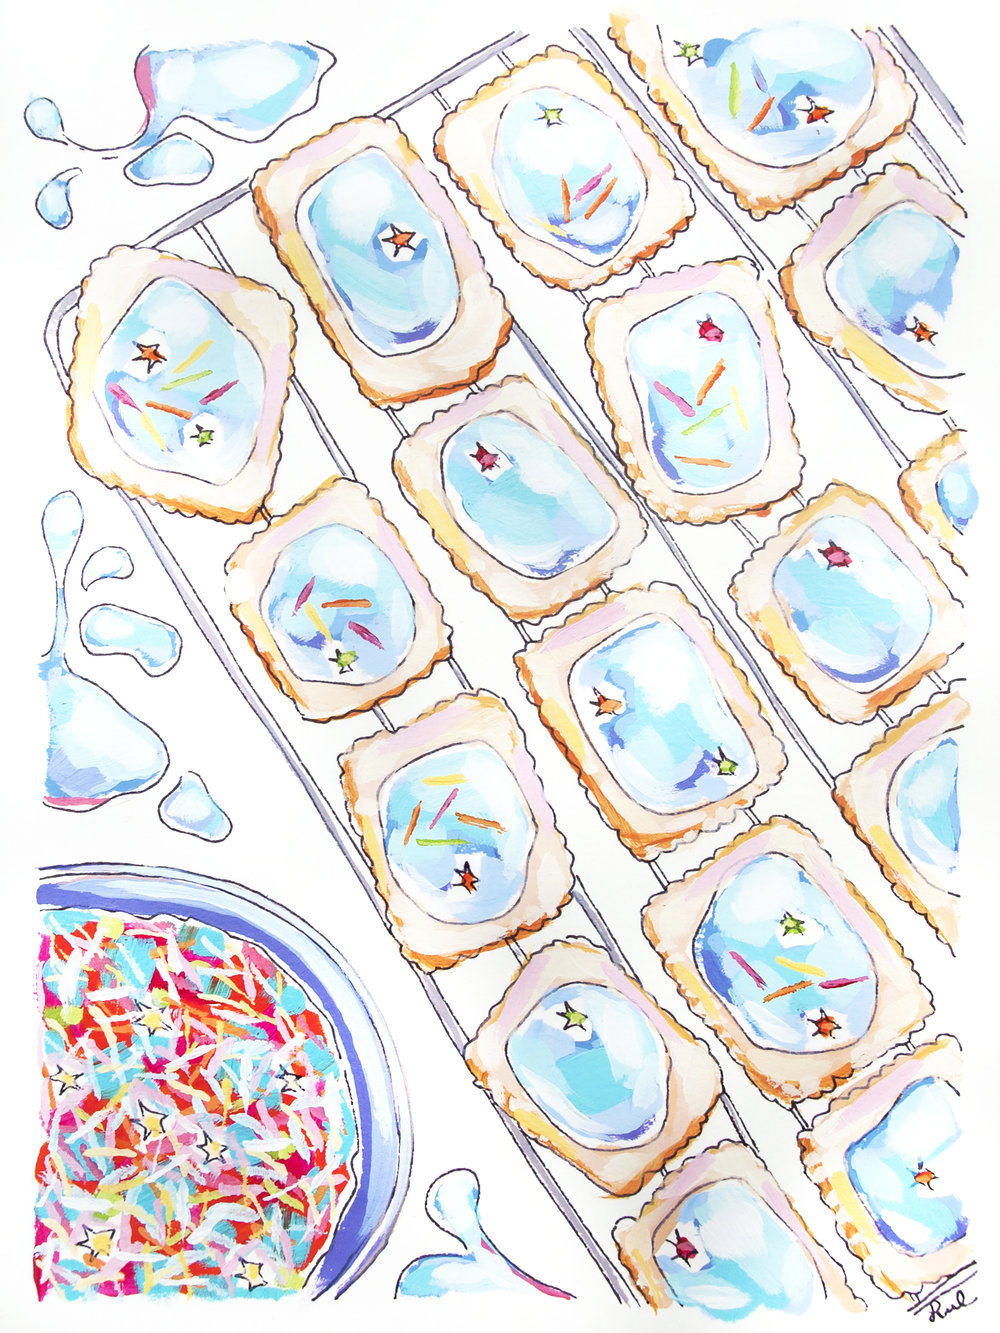 The finished pop tart painting!